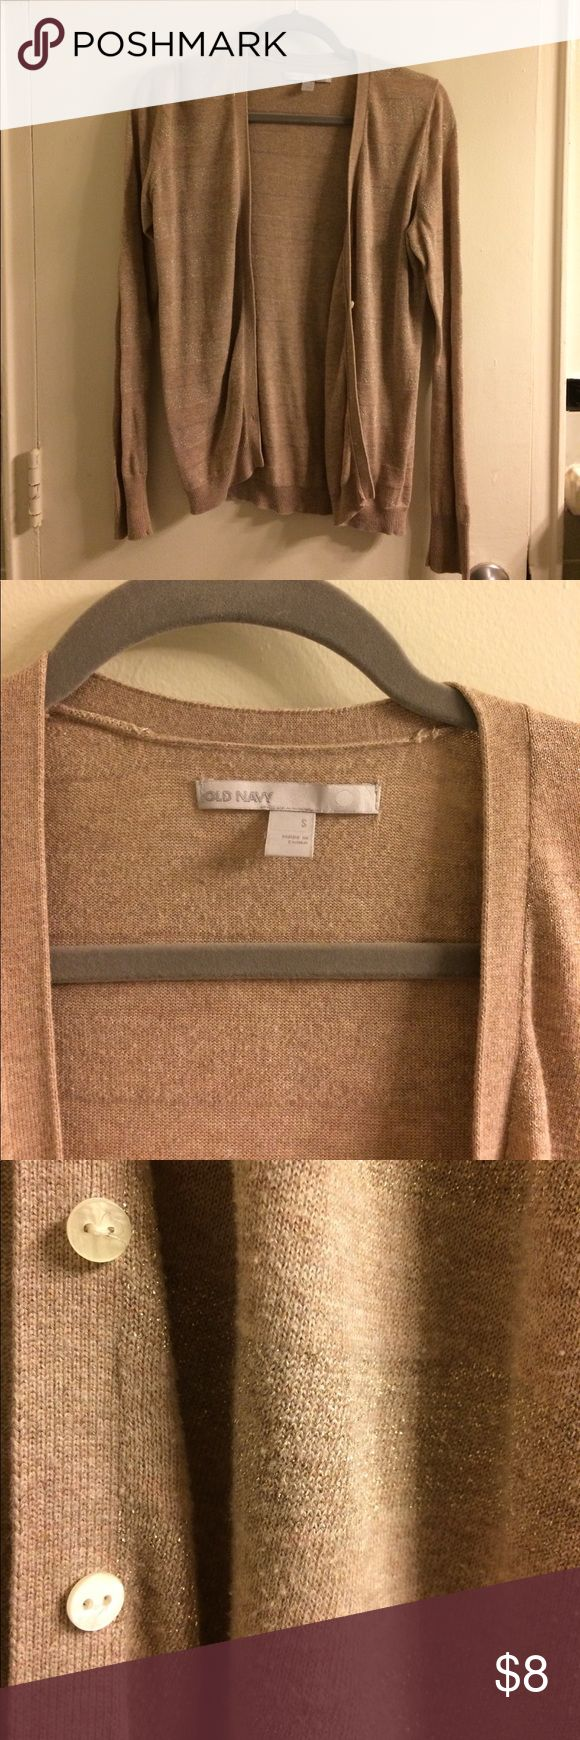 Tan and gold cardigan Cute lightweight cardigan. Great fall staple! Old Navy Sweaters Cardigans